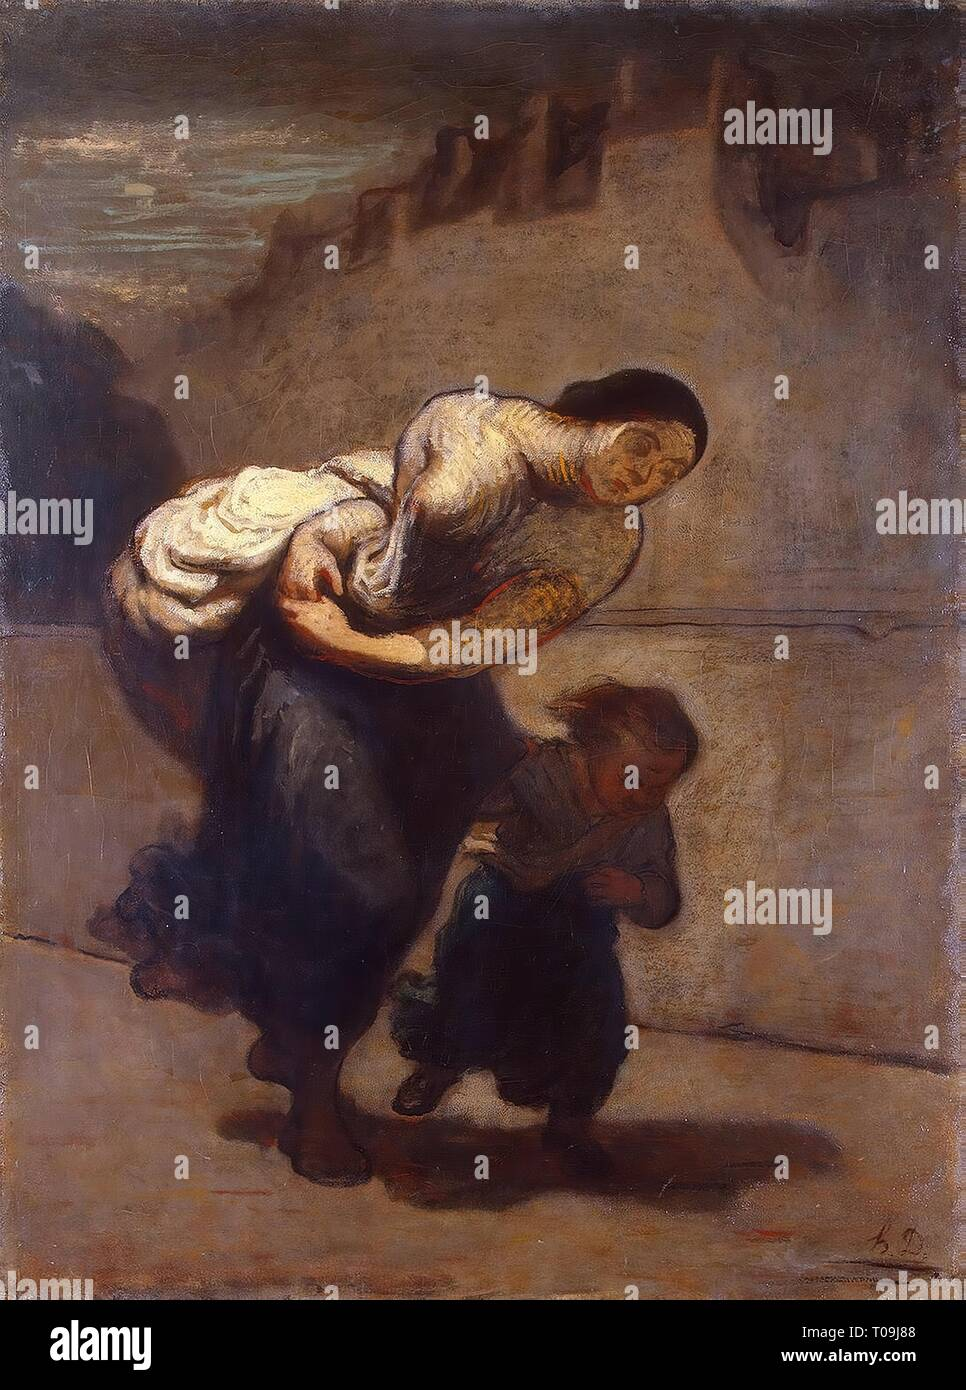 'The Burden (The Laundress)'. France, 1850-1853. Dimensions: 131x98 cm. Museum: State Hermitage, St. Petersburg. Author: HONORE DAUMIER. - Stock Image